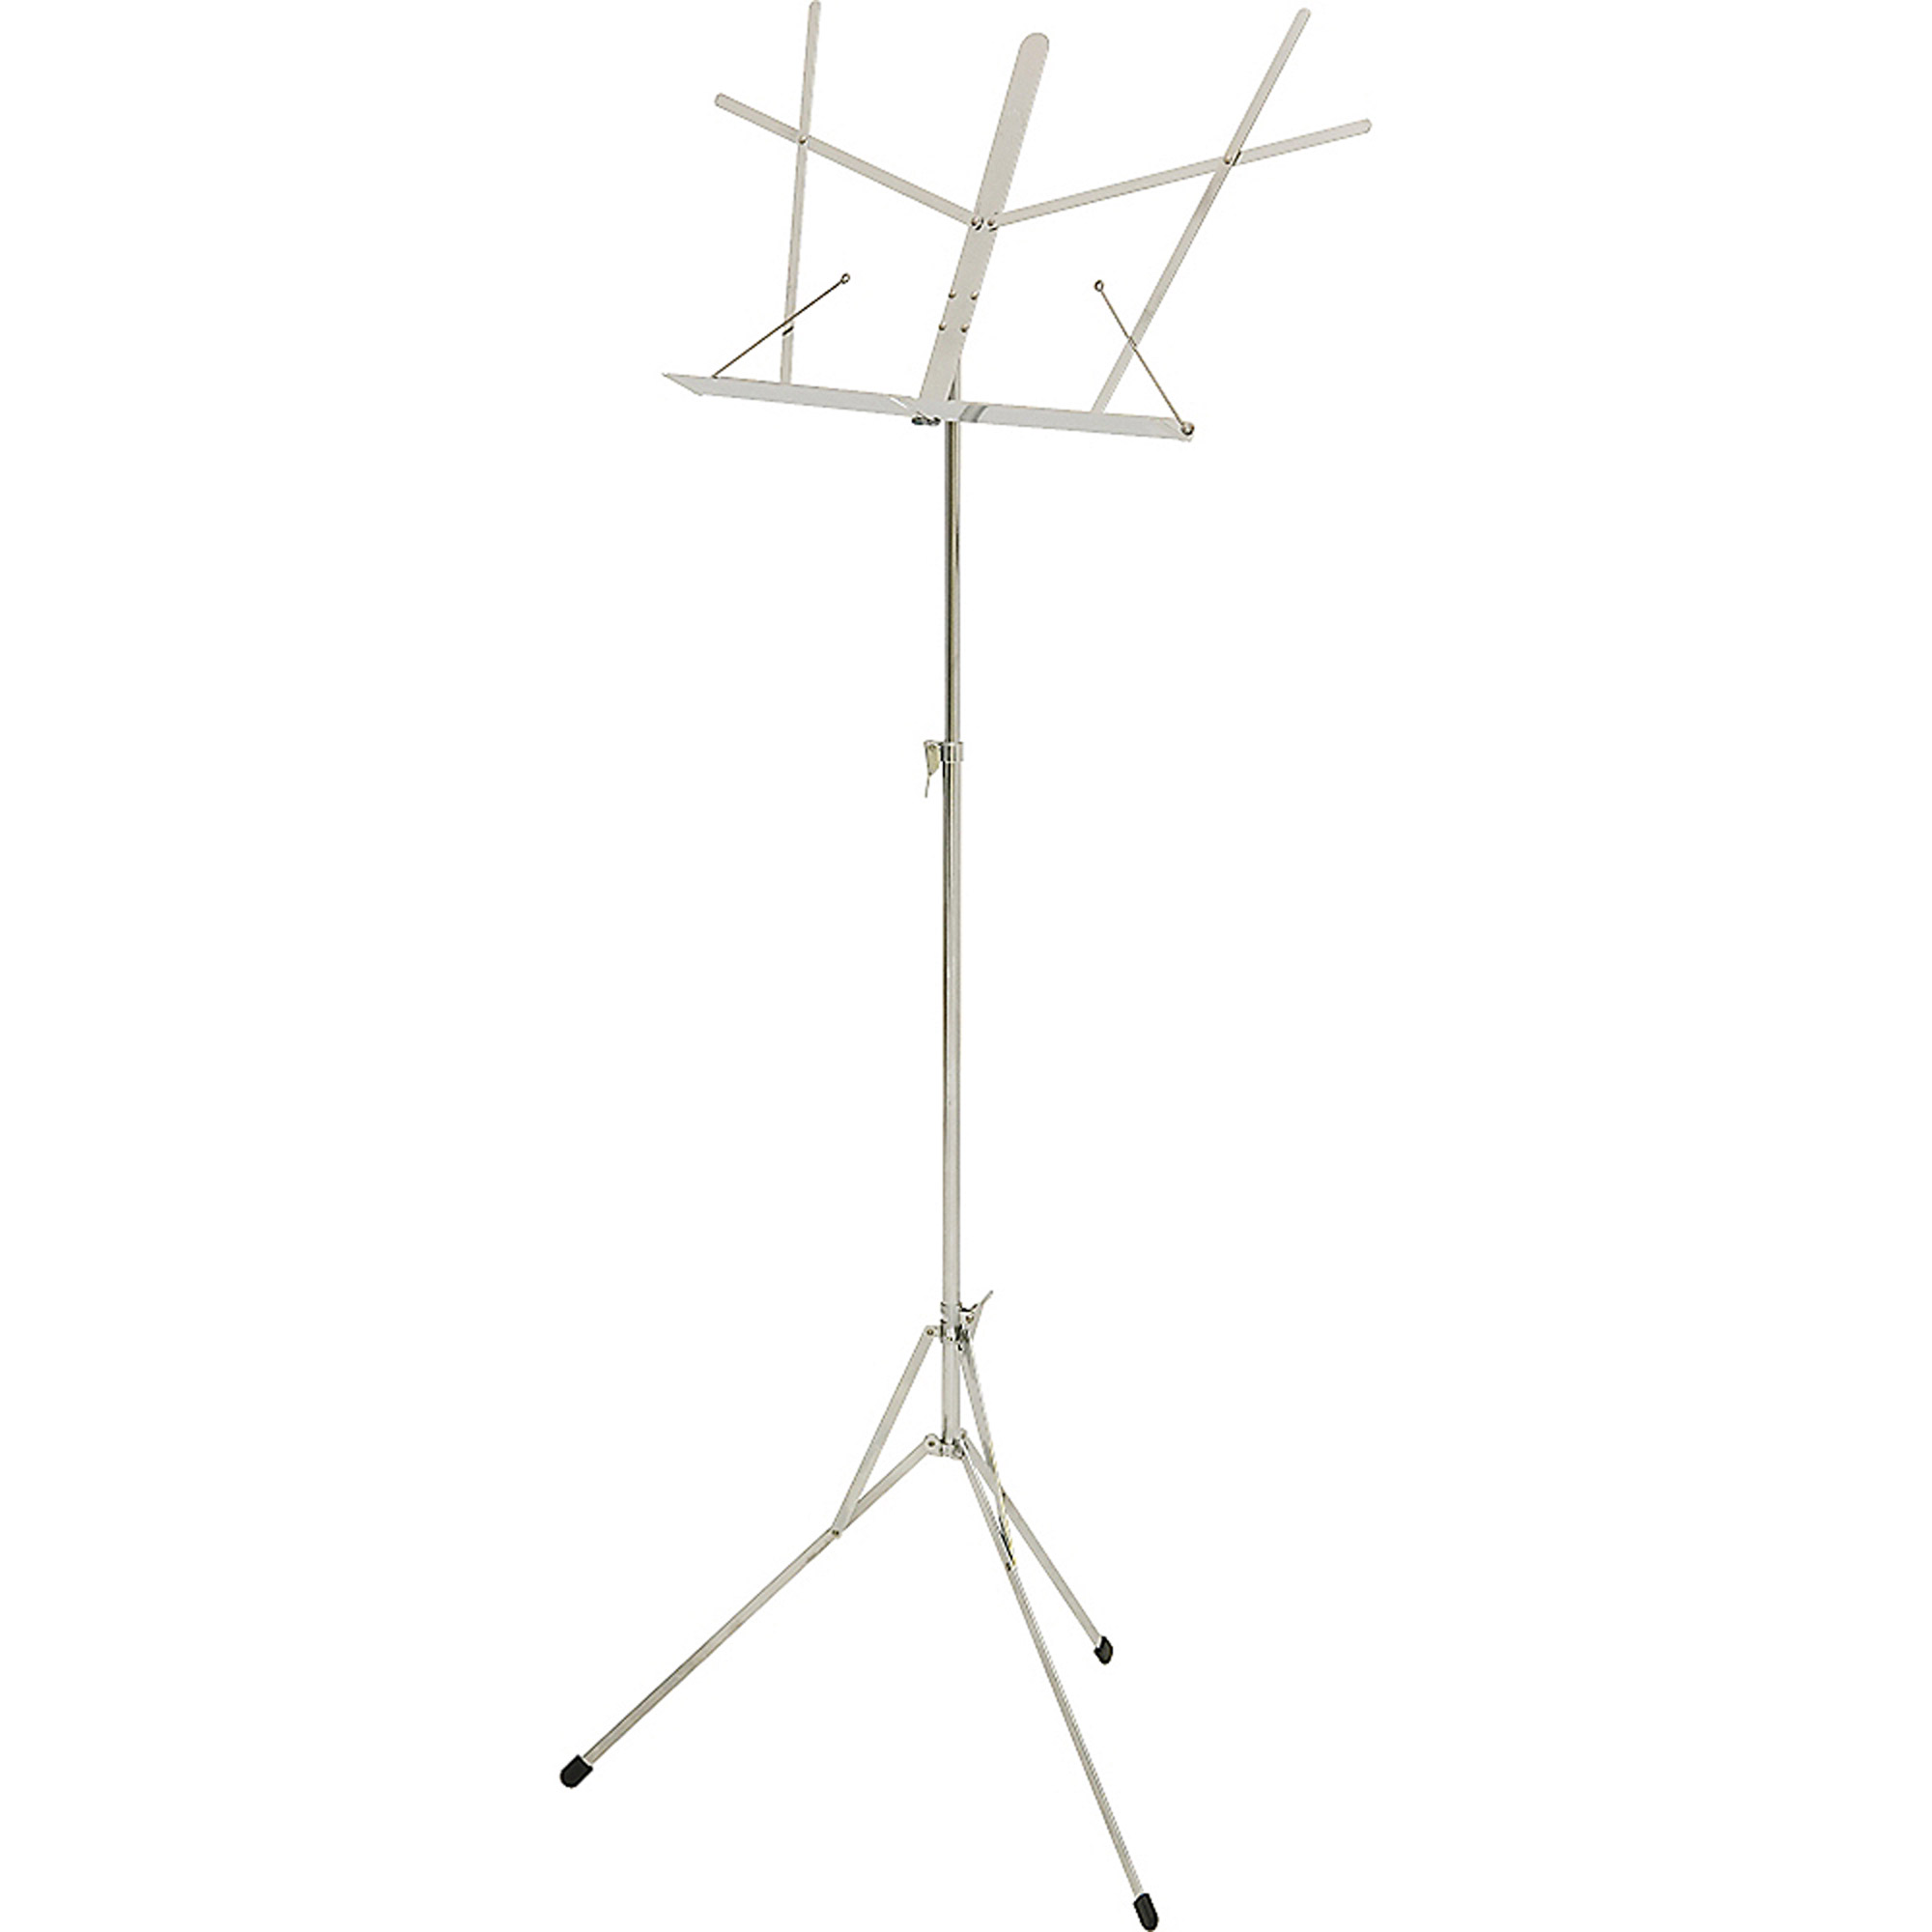 Hamilton Stands American Classic Folding Stand, Chrome, 2 Section by Hamilton